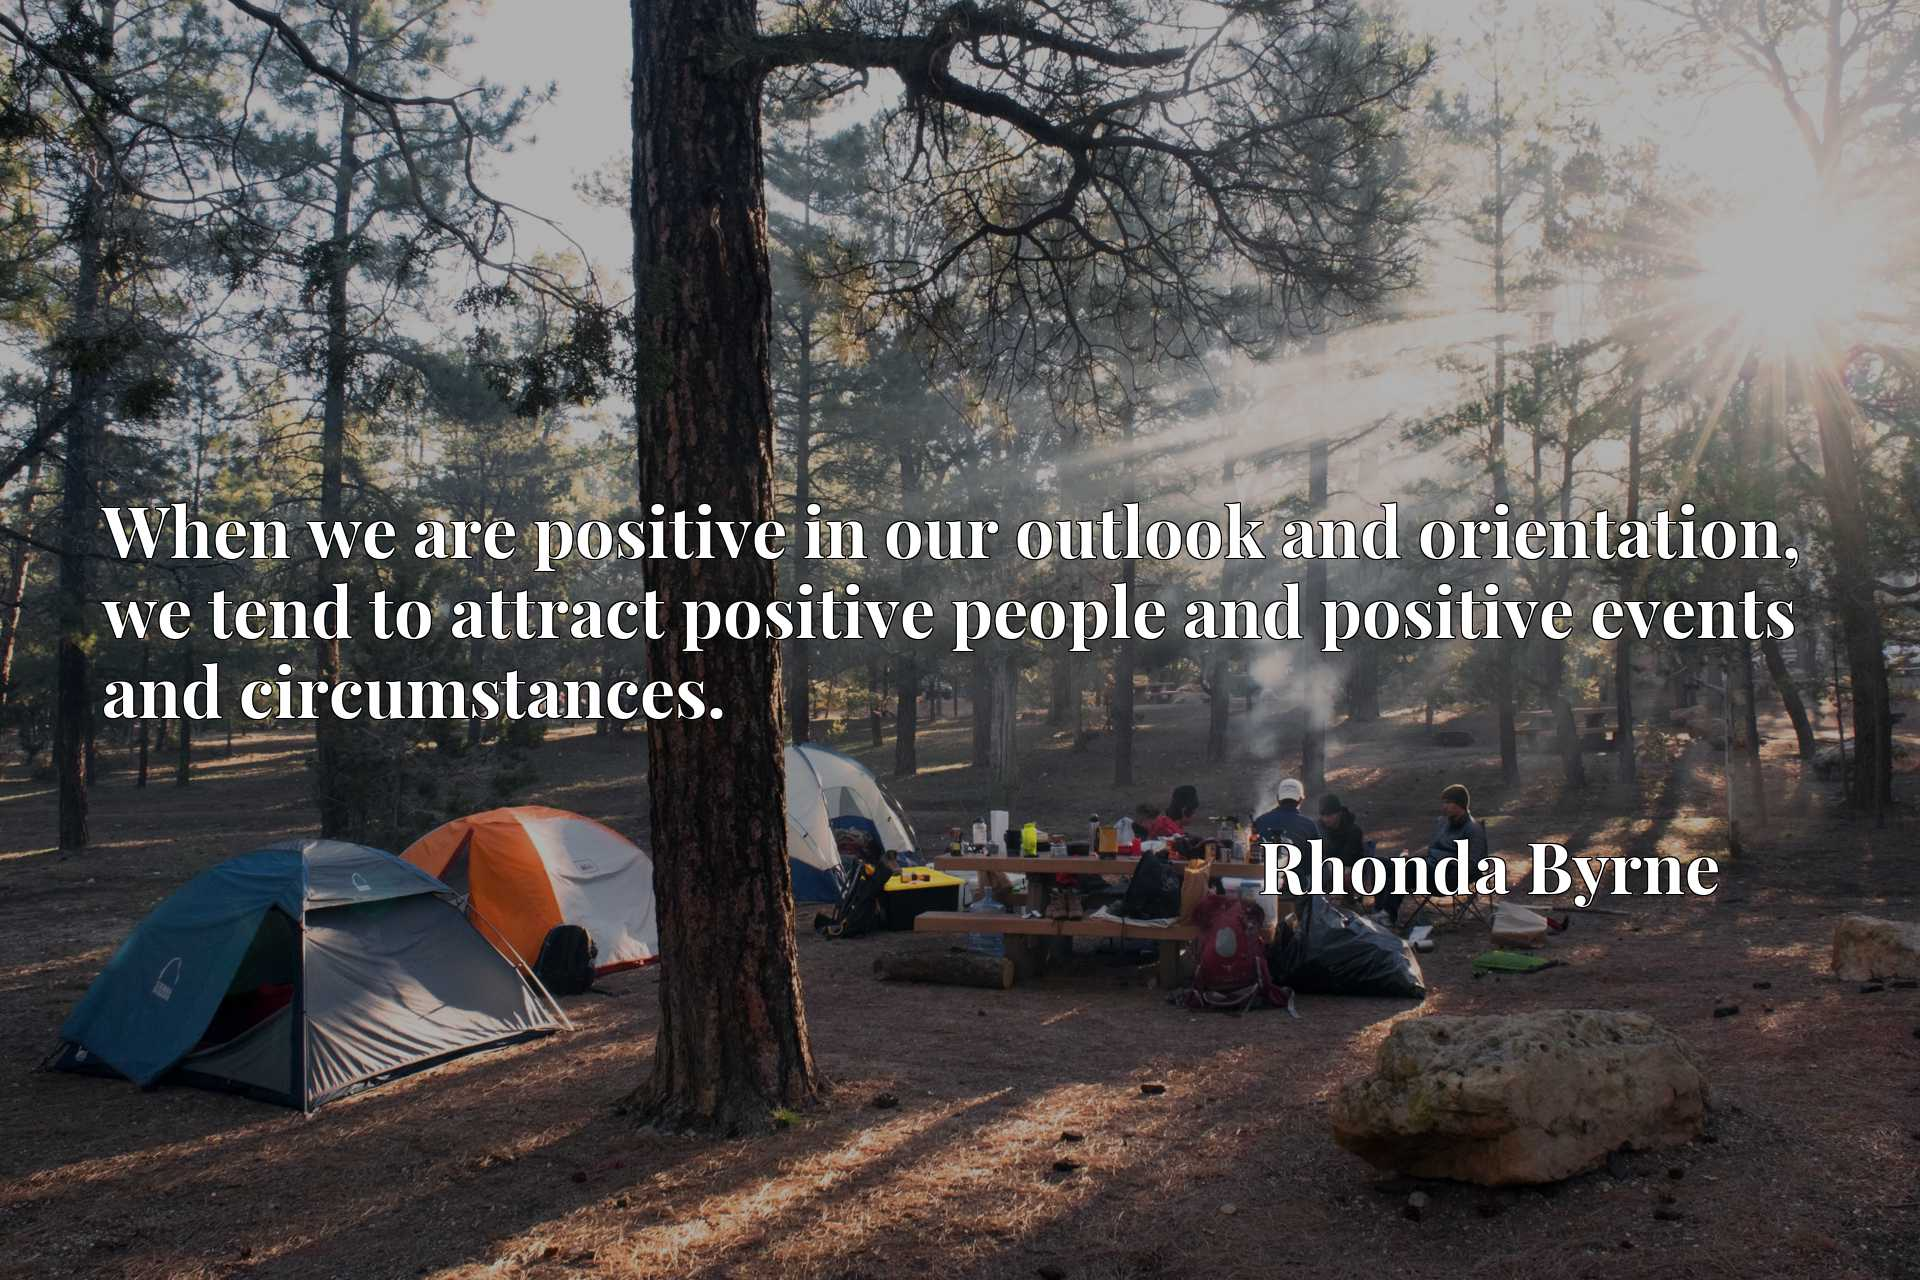 When we are positive in our outlook and orientation, we tend to attract positive people and positive events and circumstances.